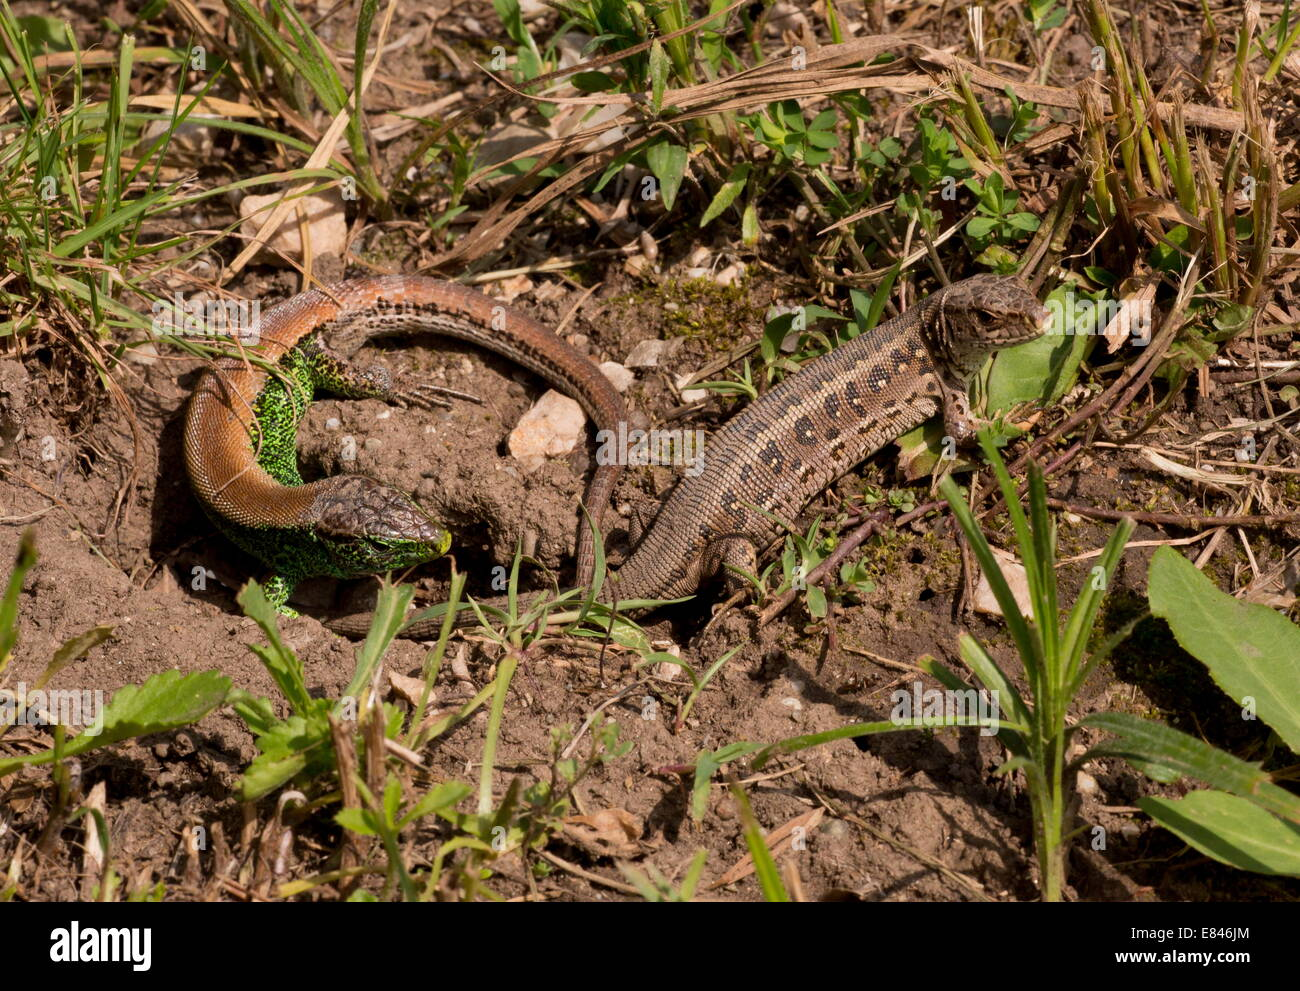 Sand lizards, Lacerta agilis, male and female courting, in breeding season. - Stock Image